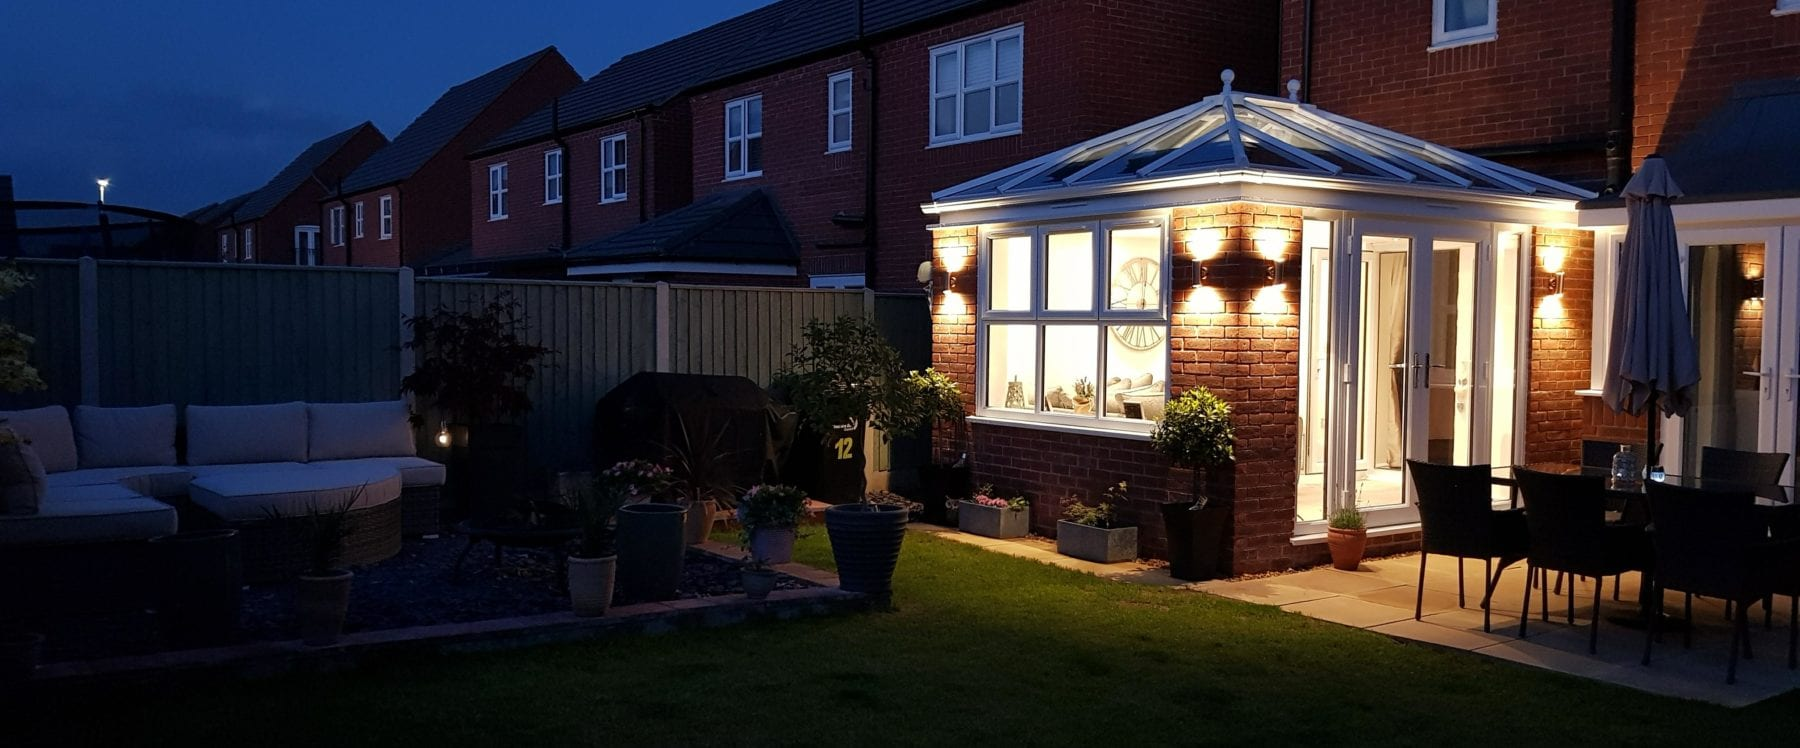 Middlewich home extension with roof lantern